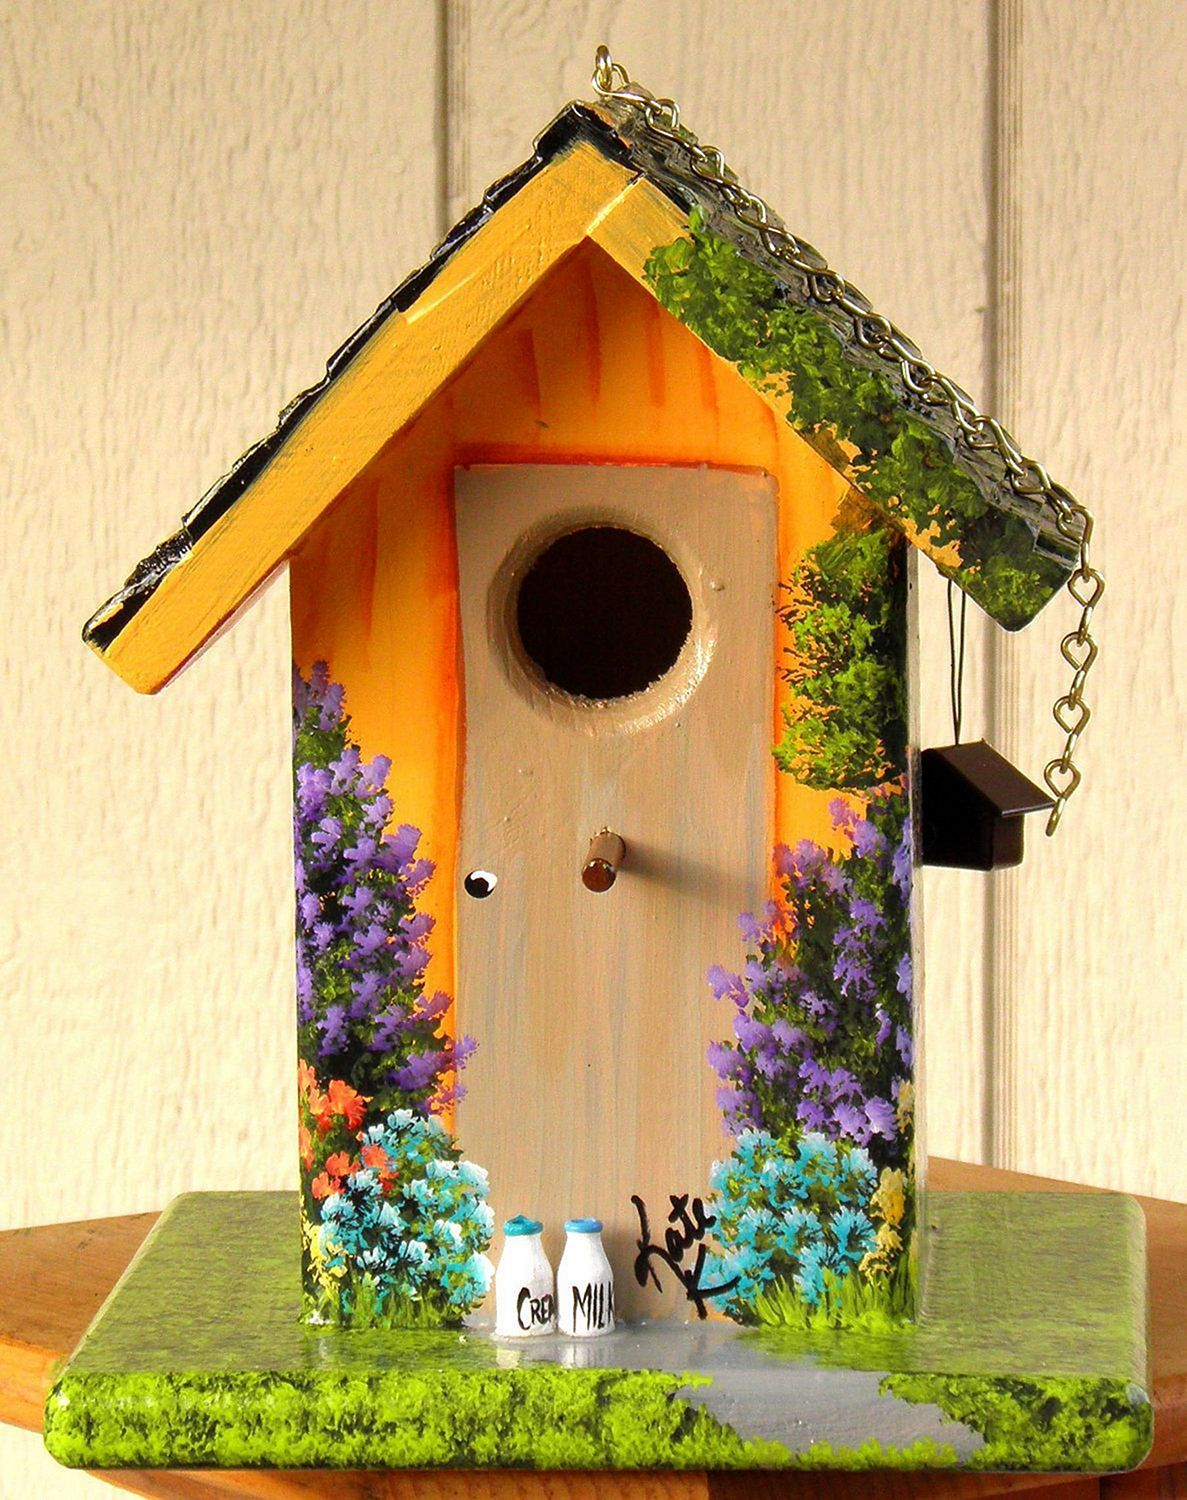 great idea 65 cool birdhouse design ideas to make birds easily to nest in your - Birdhouse Design Ideas